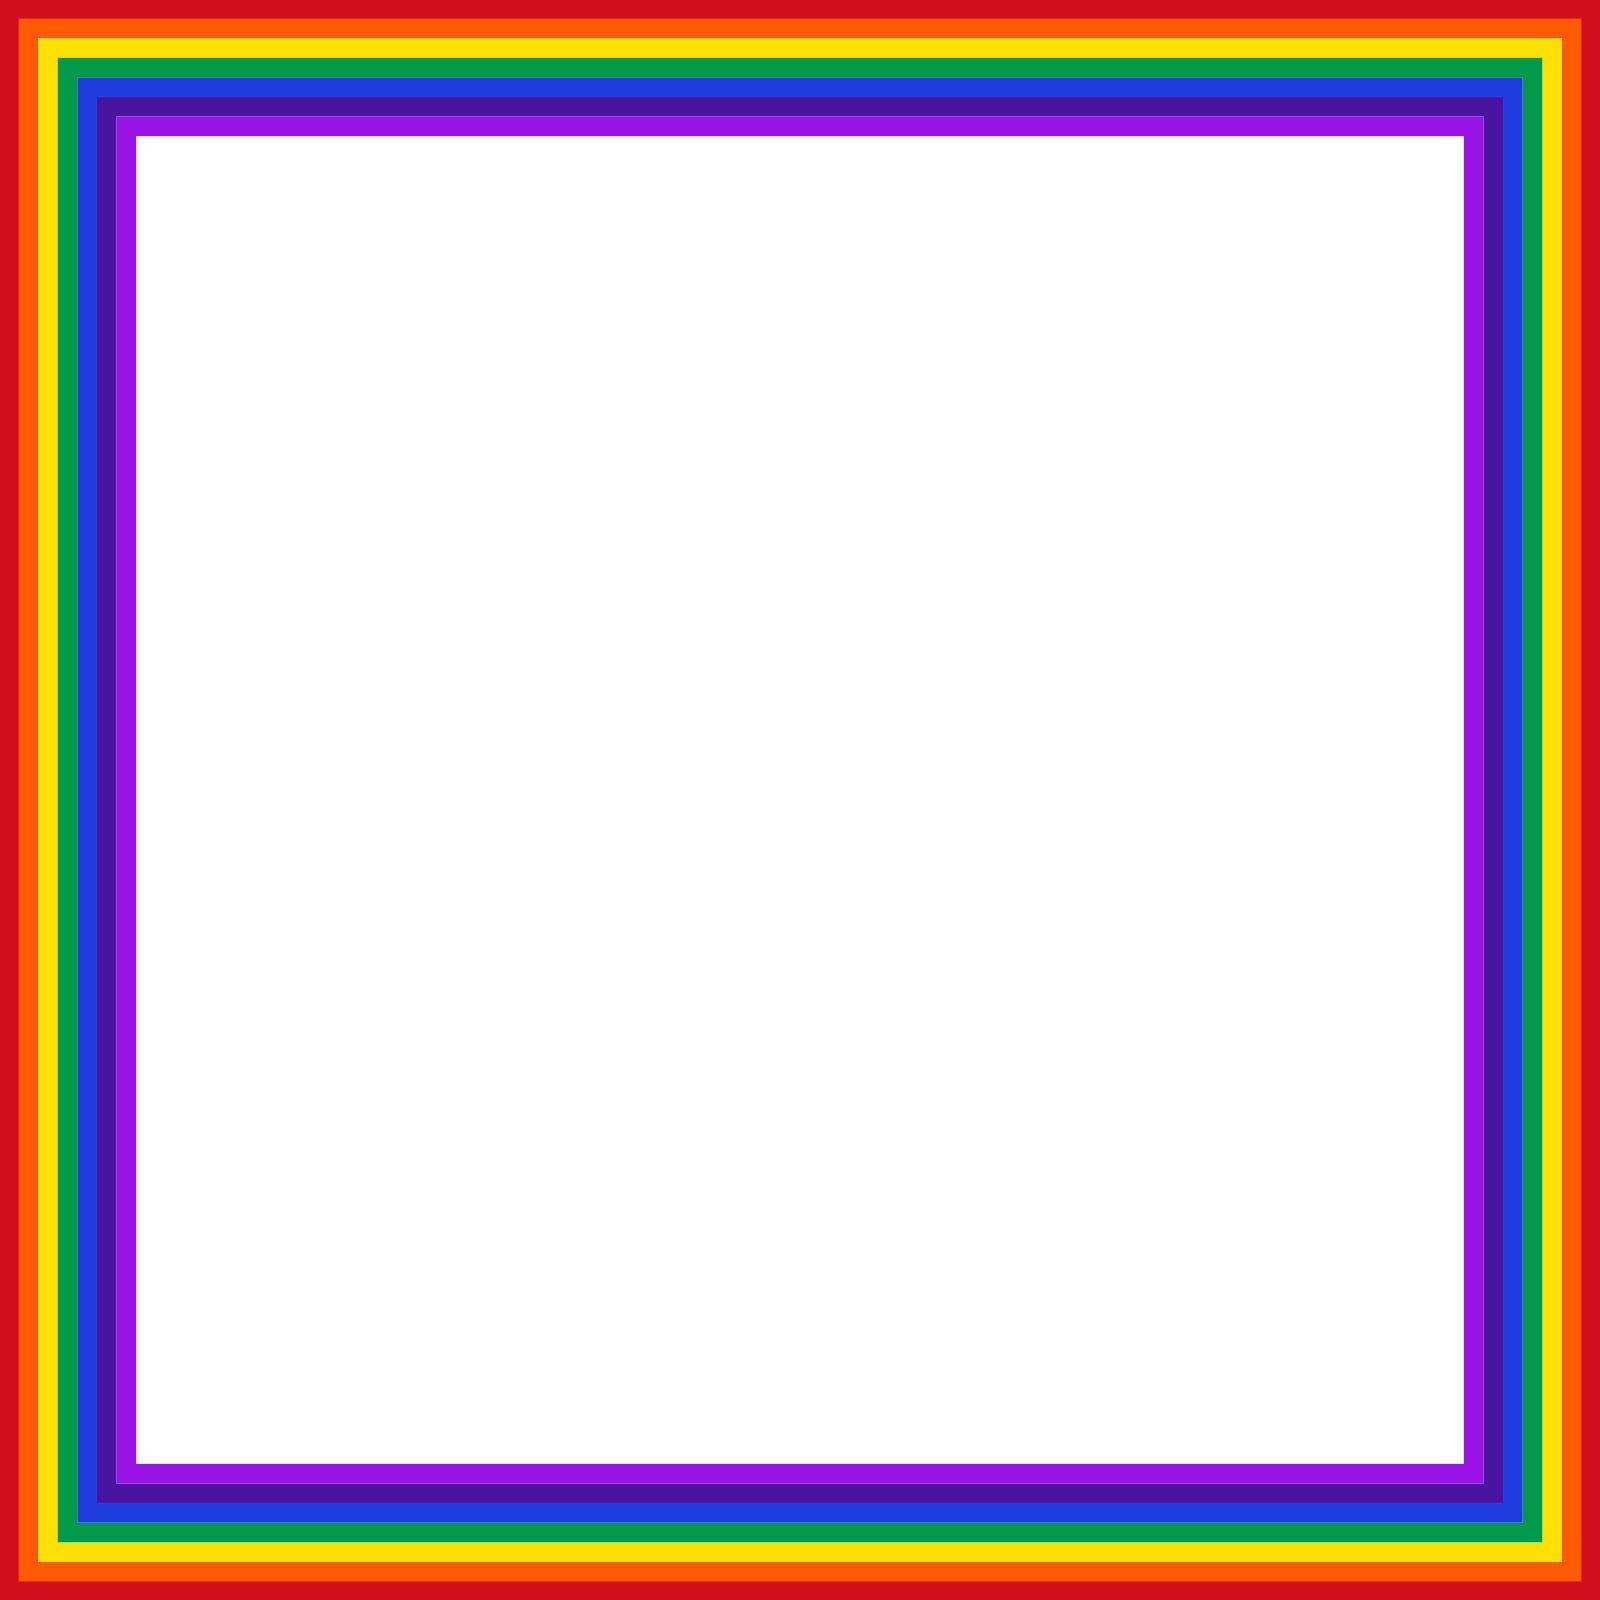 Rainbow design droide. Square clipart